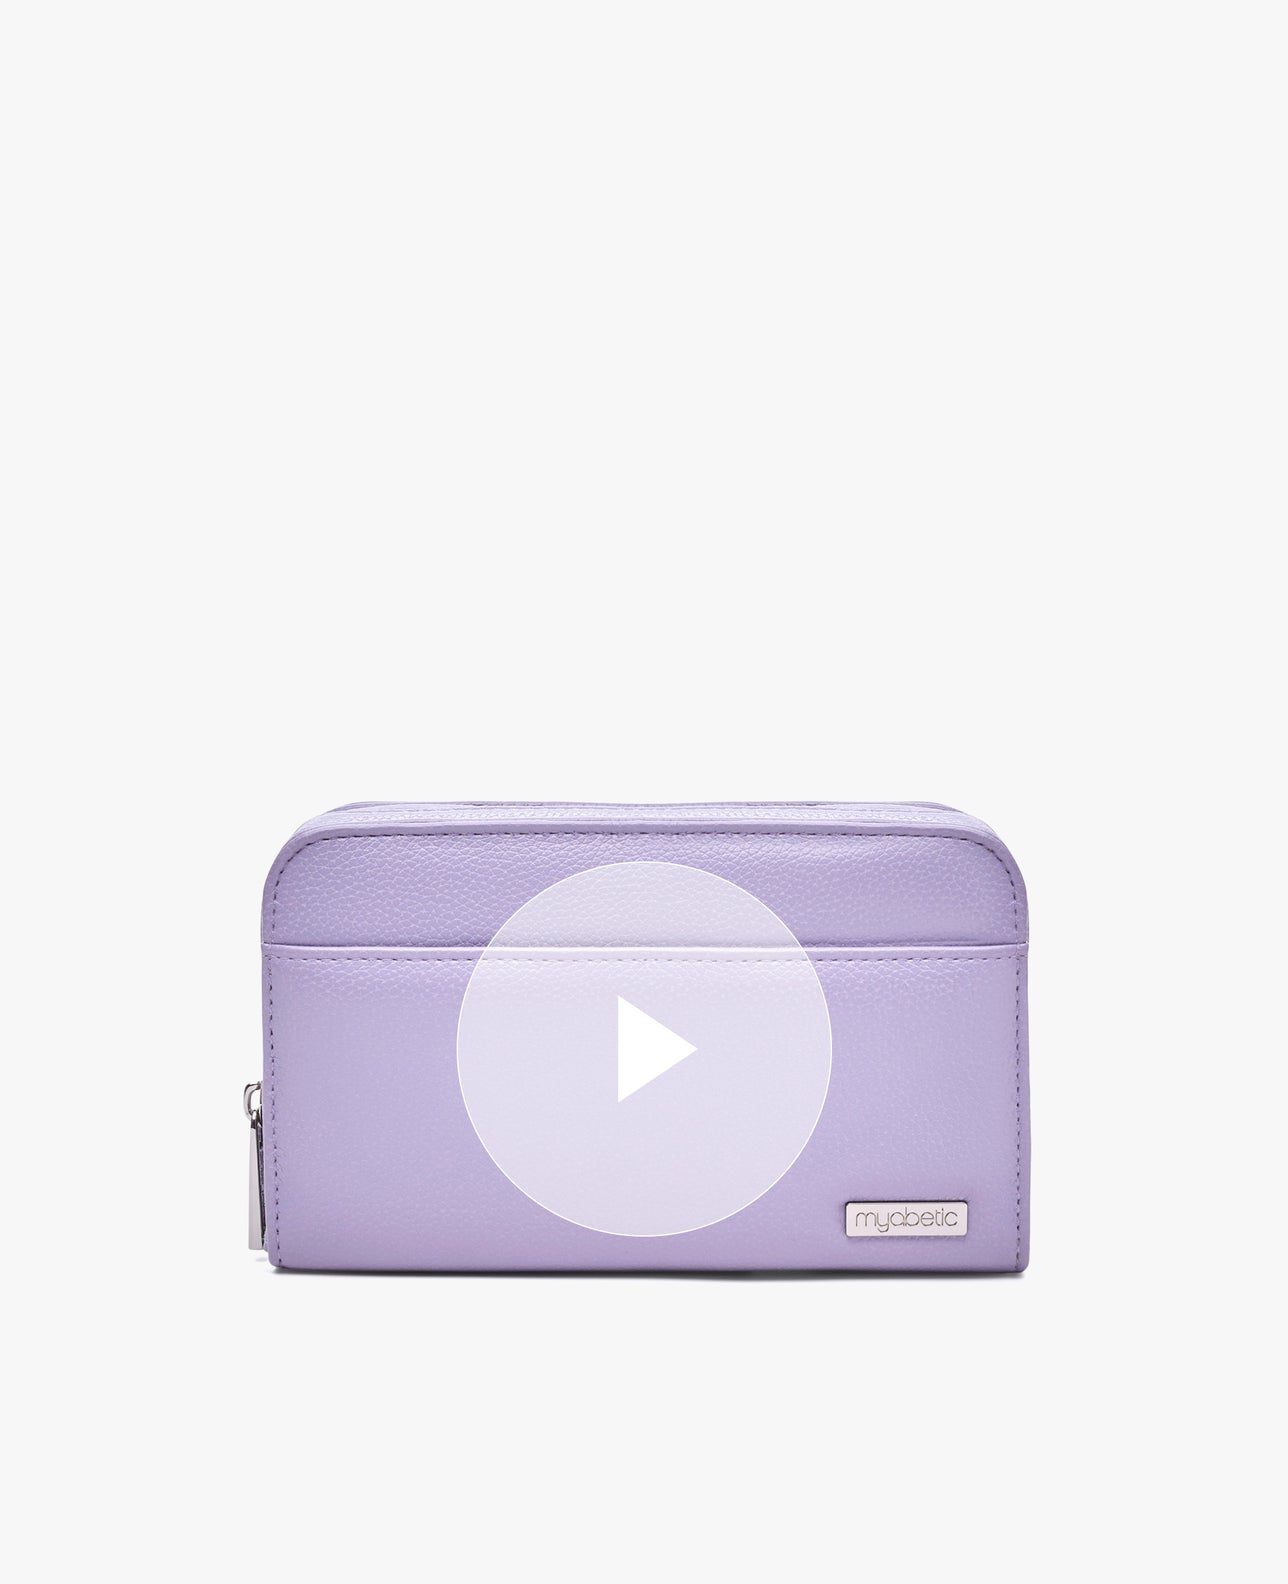 Color:Lavender  https://player.vimeo.com/video/523970398